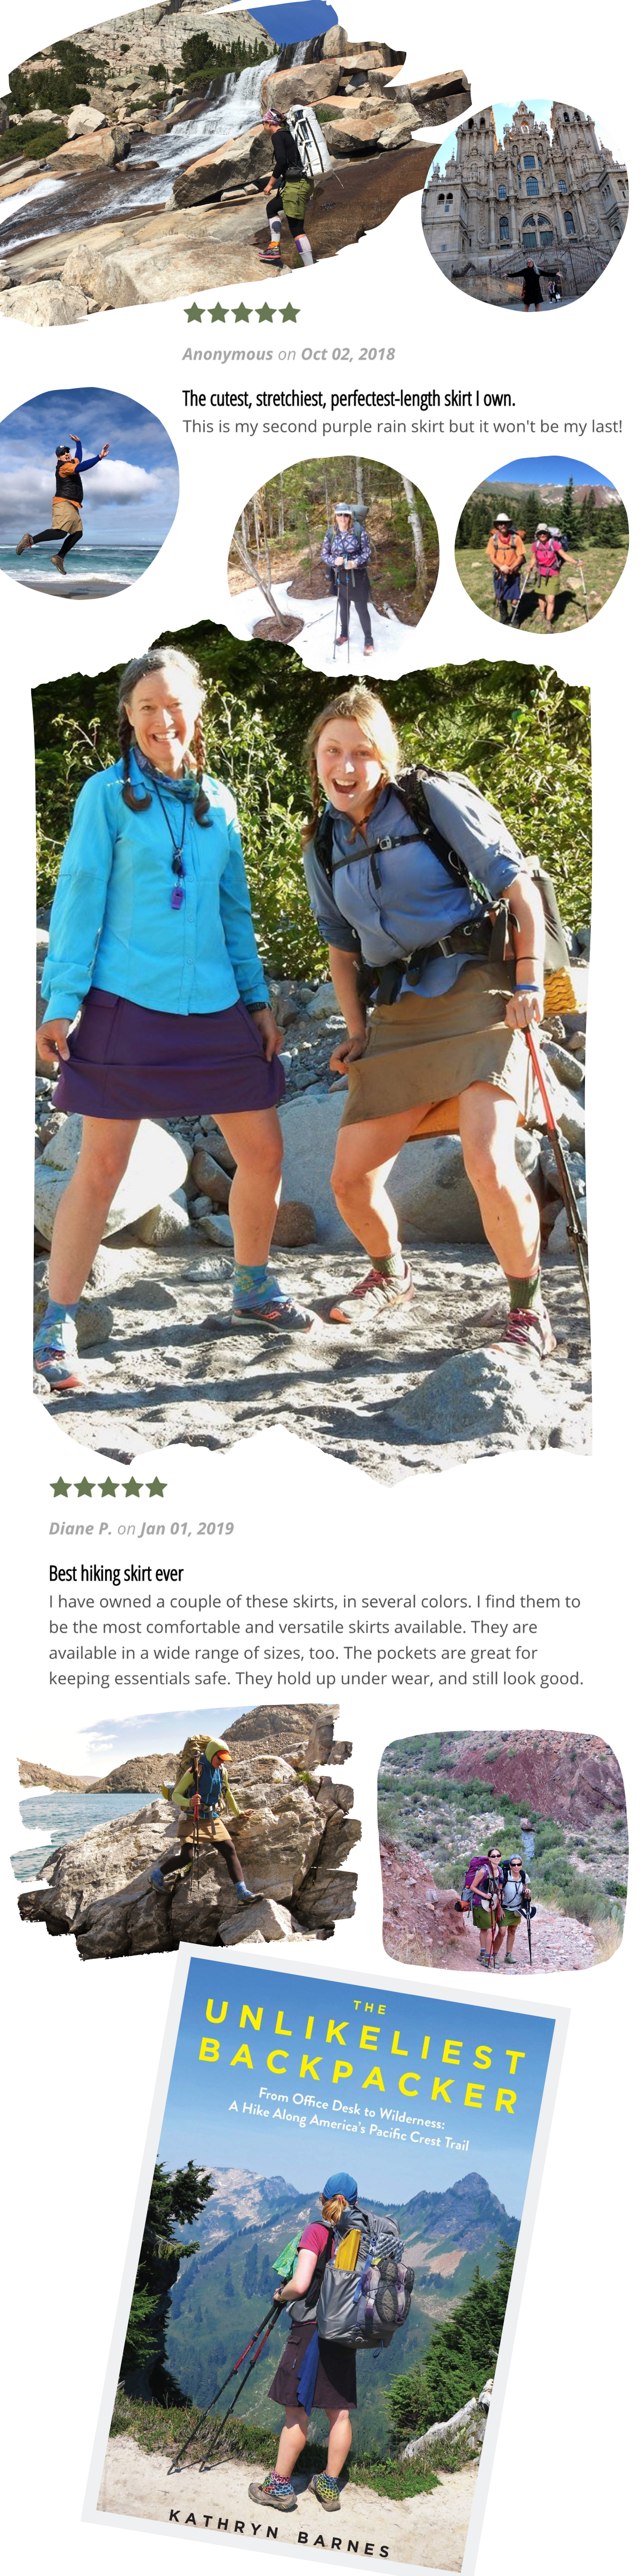 Purple Rain Adventure Hiking Skirts Customer Pictures Testimonials Reviews